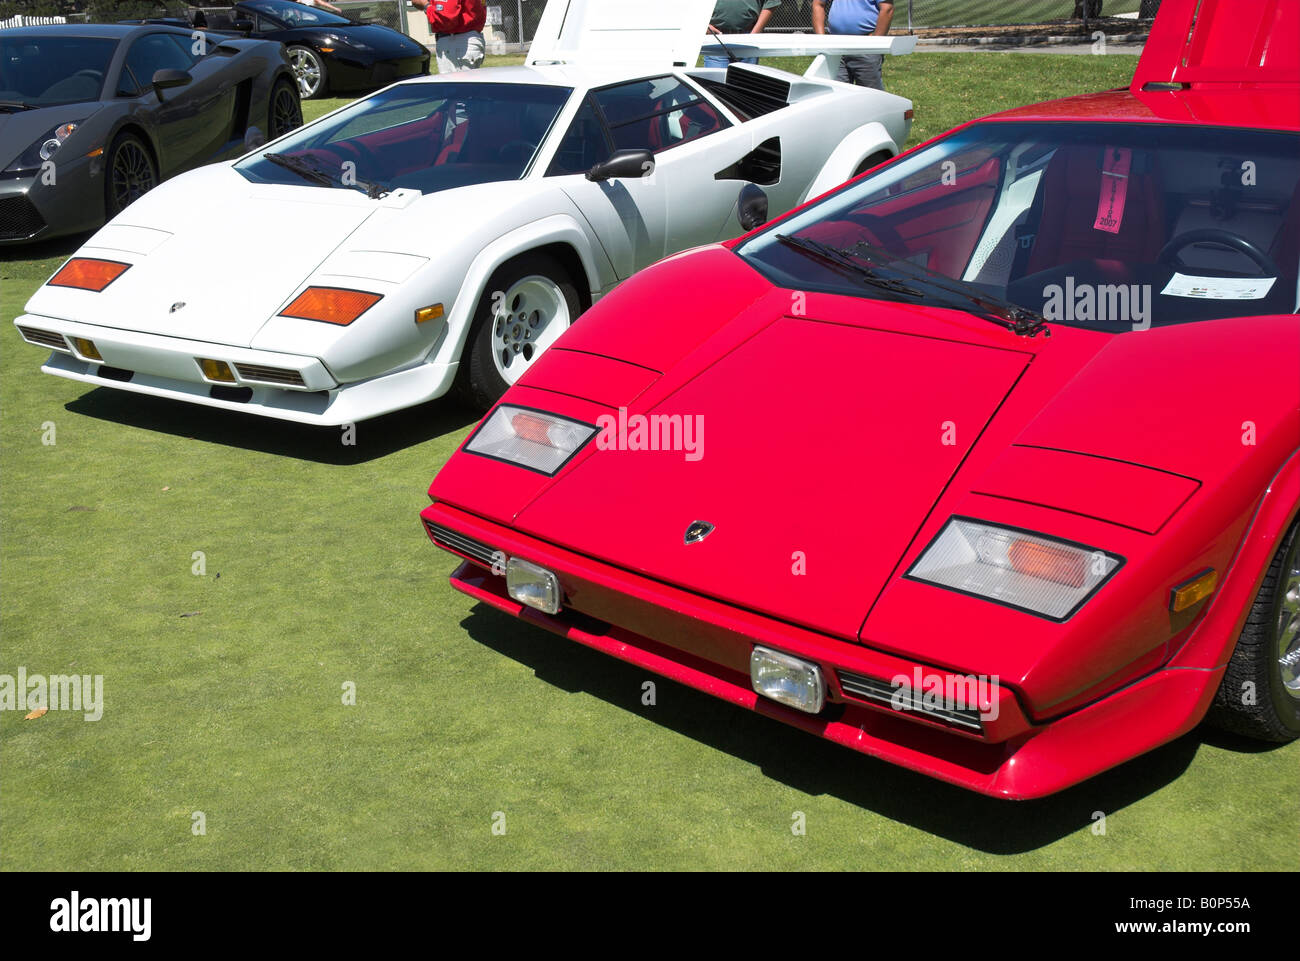 A Front Quarter View Of Two Lamborghini Countach S One Red One